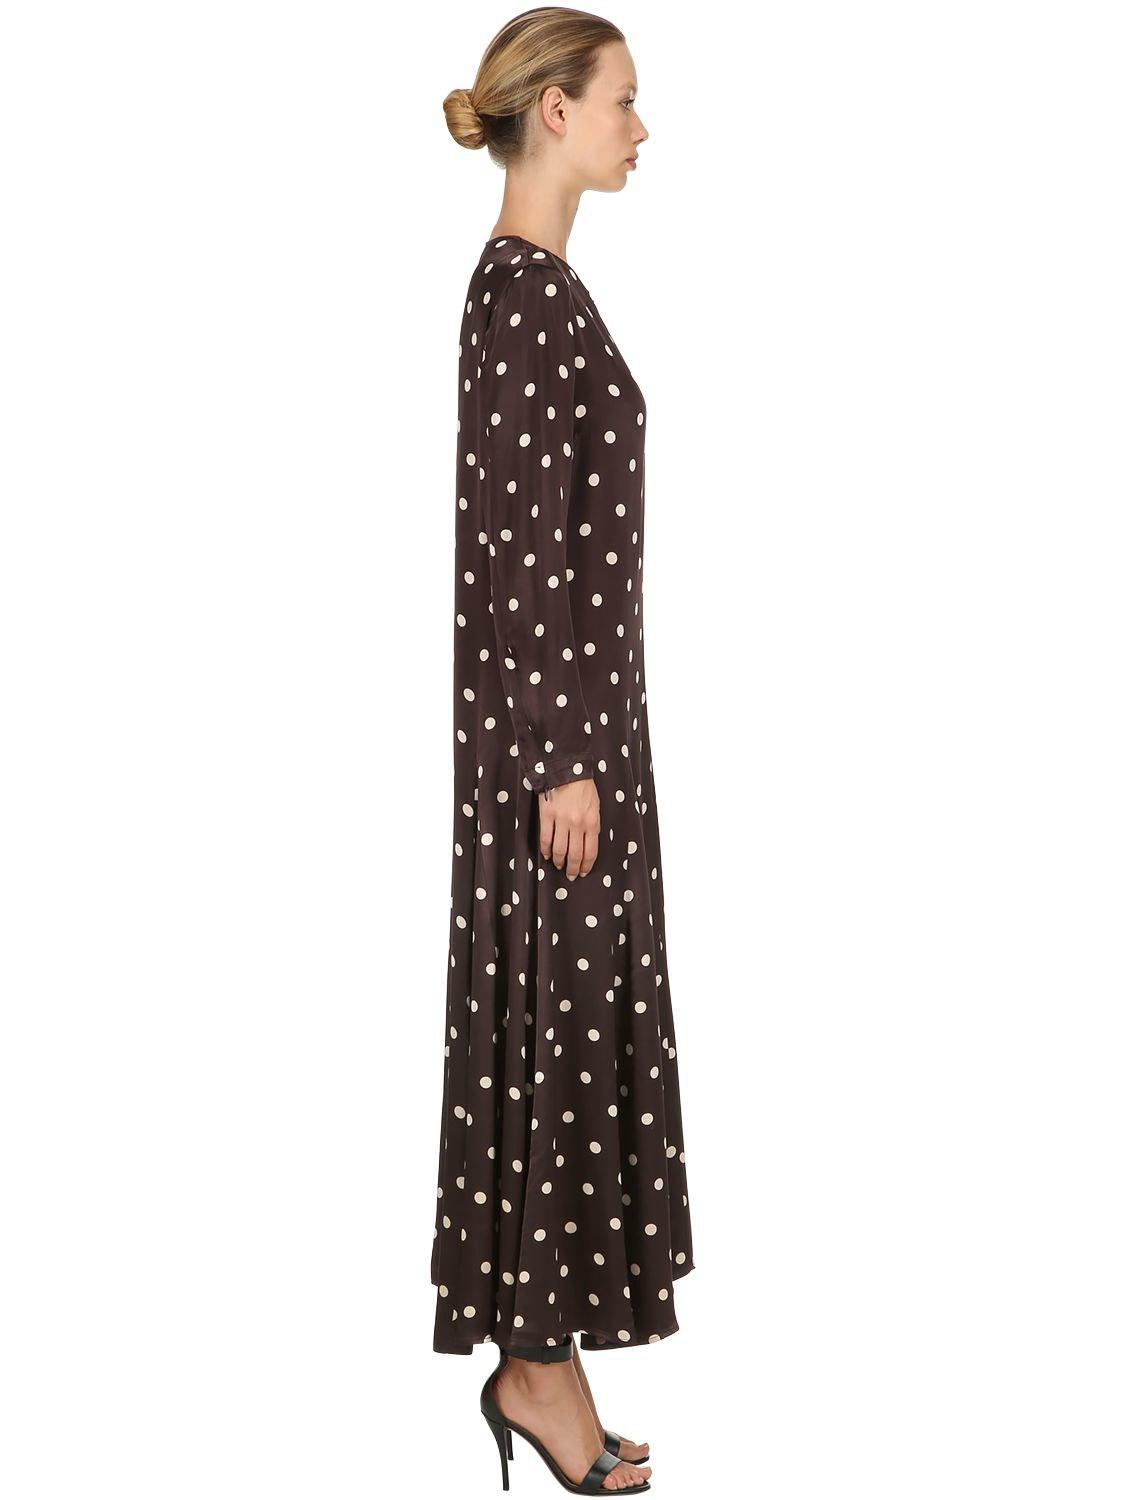 848f4cb9 Ganni - Brown Cameron Polka Dots Satin Viscose Dress - Lyst. View fullscreen